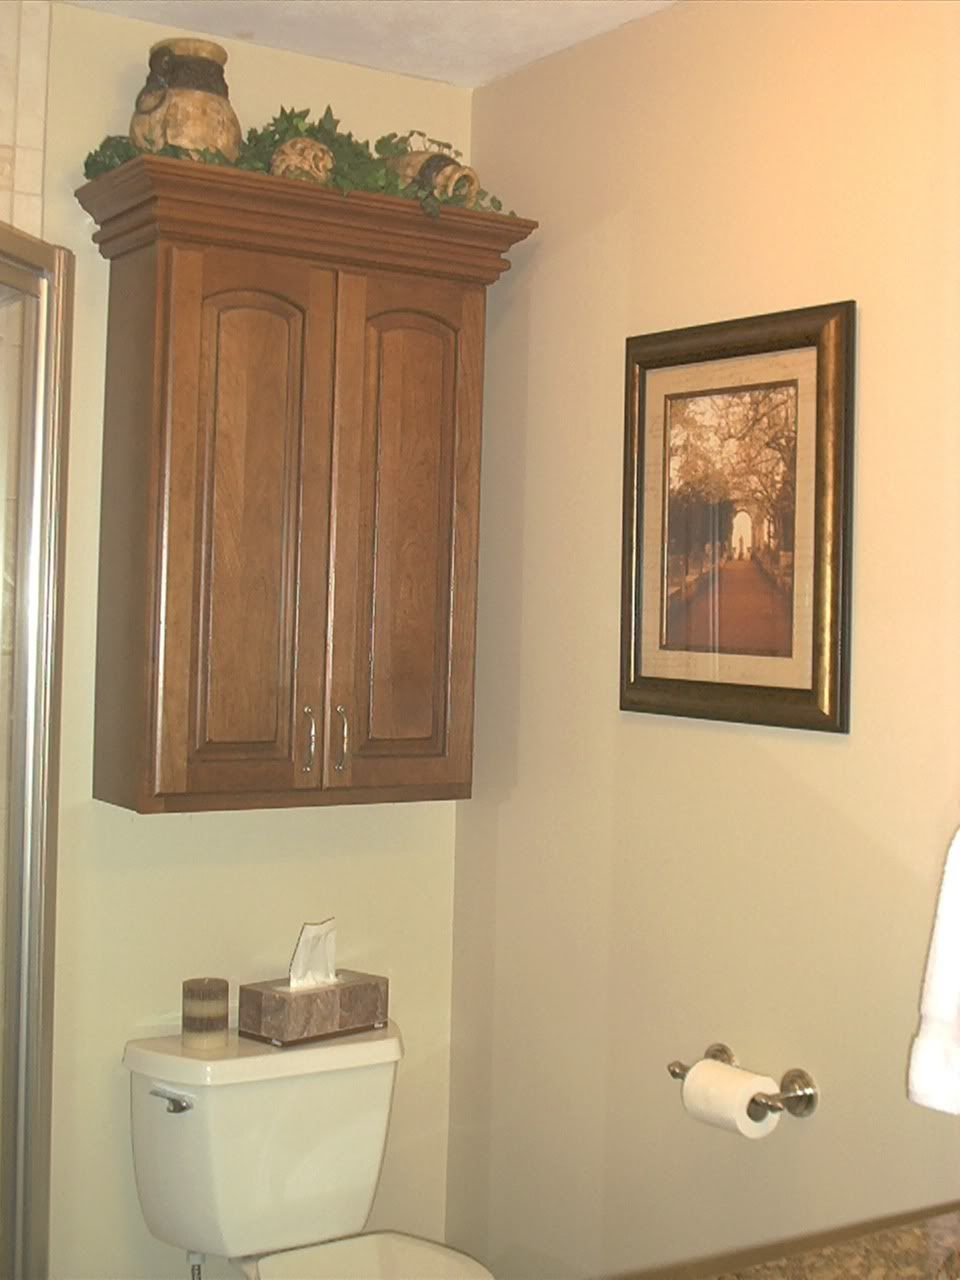 Bathroom Cabinets Above Toilet bathroom storage cabinets over toilet | wall cabinet above toilet